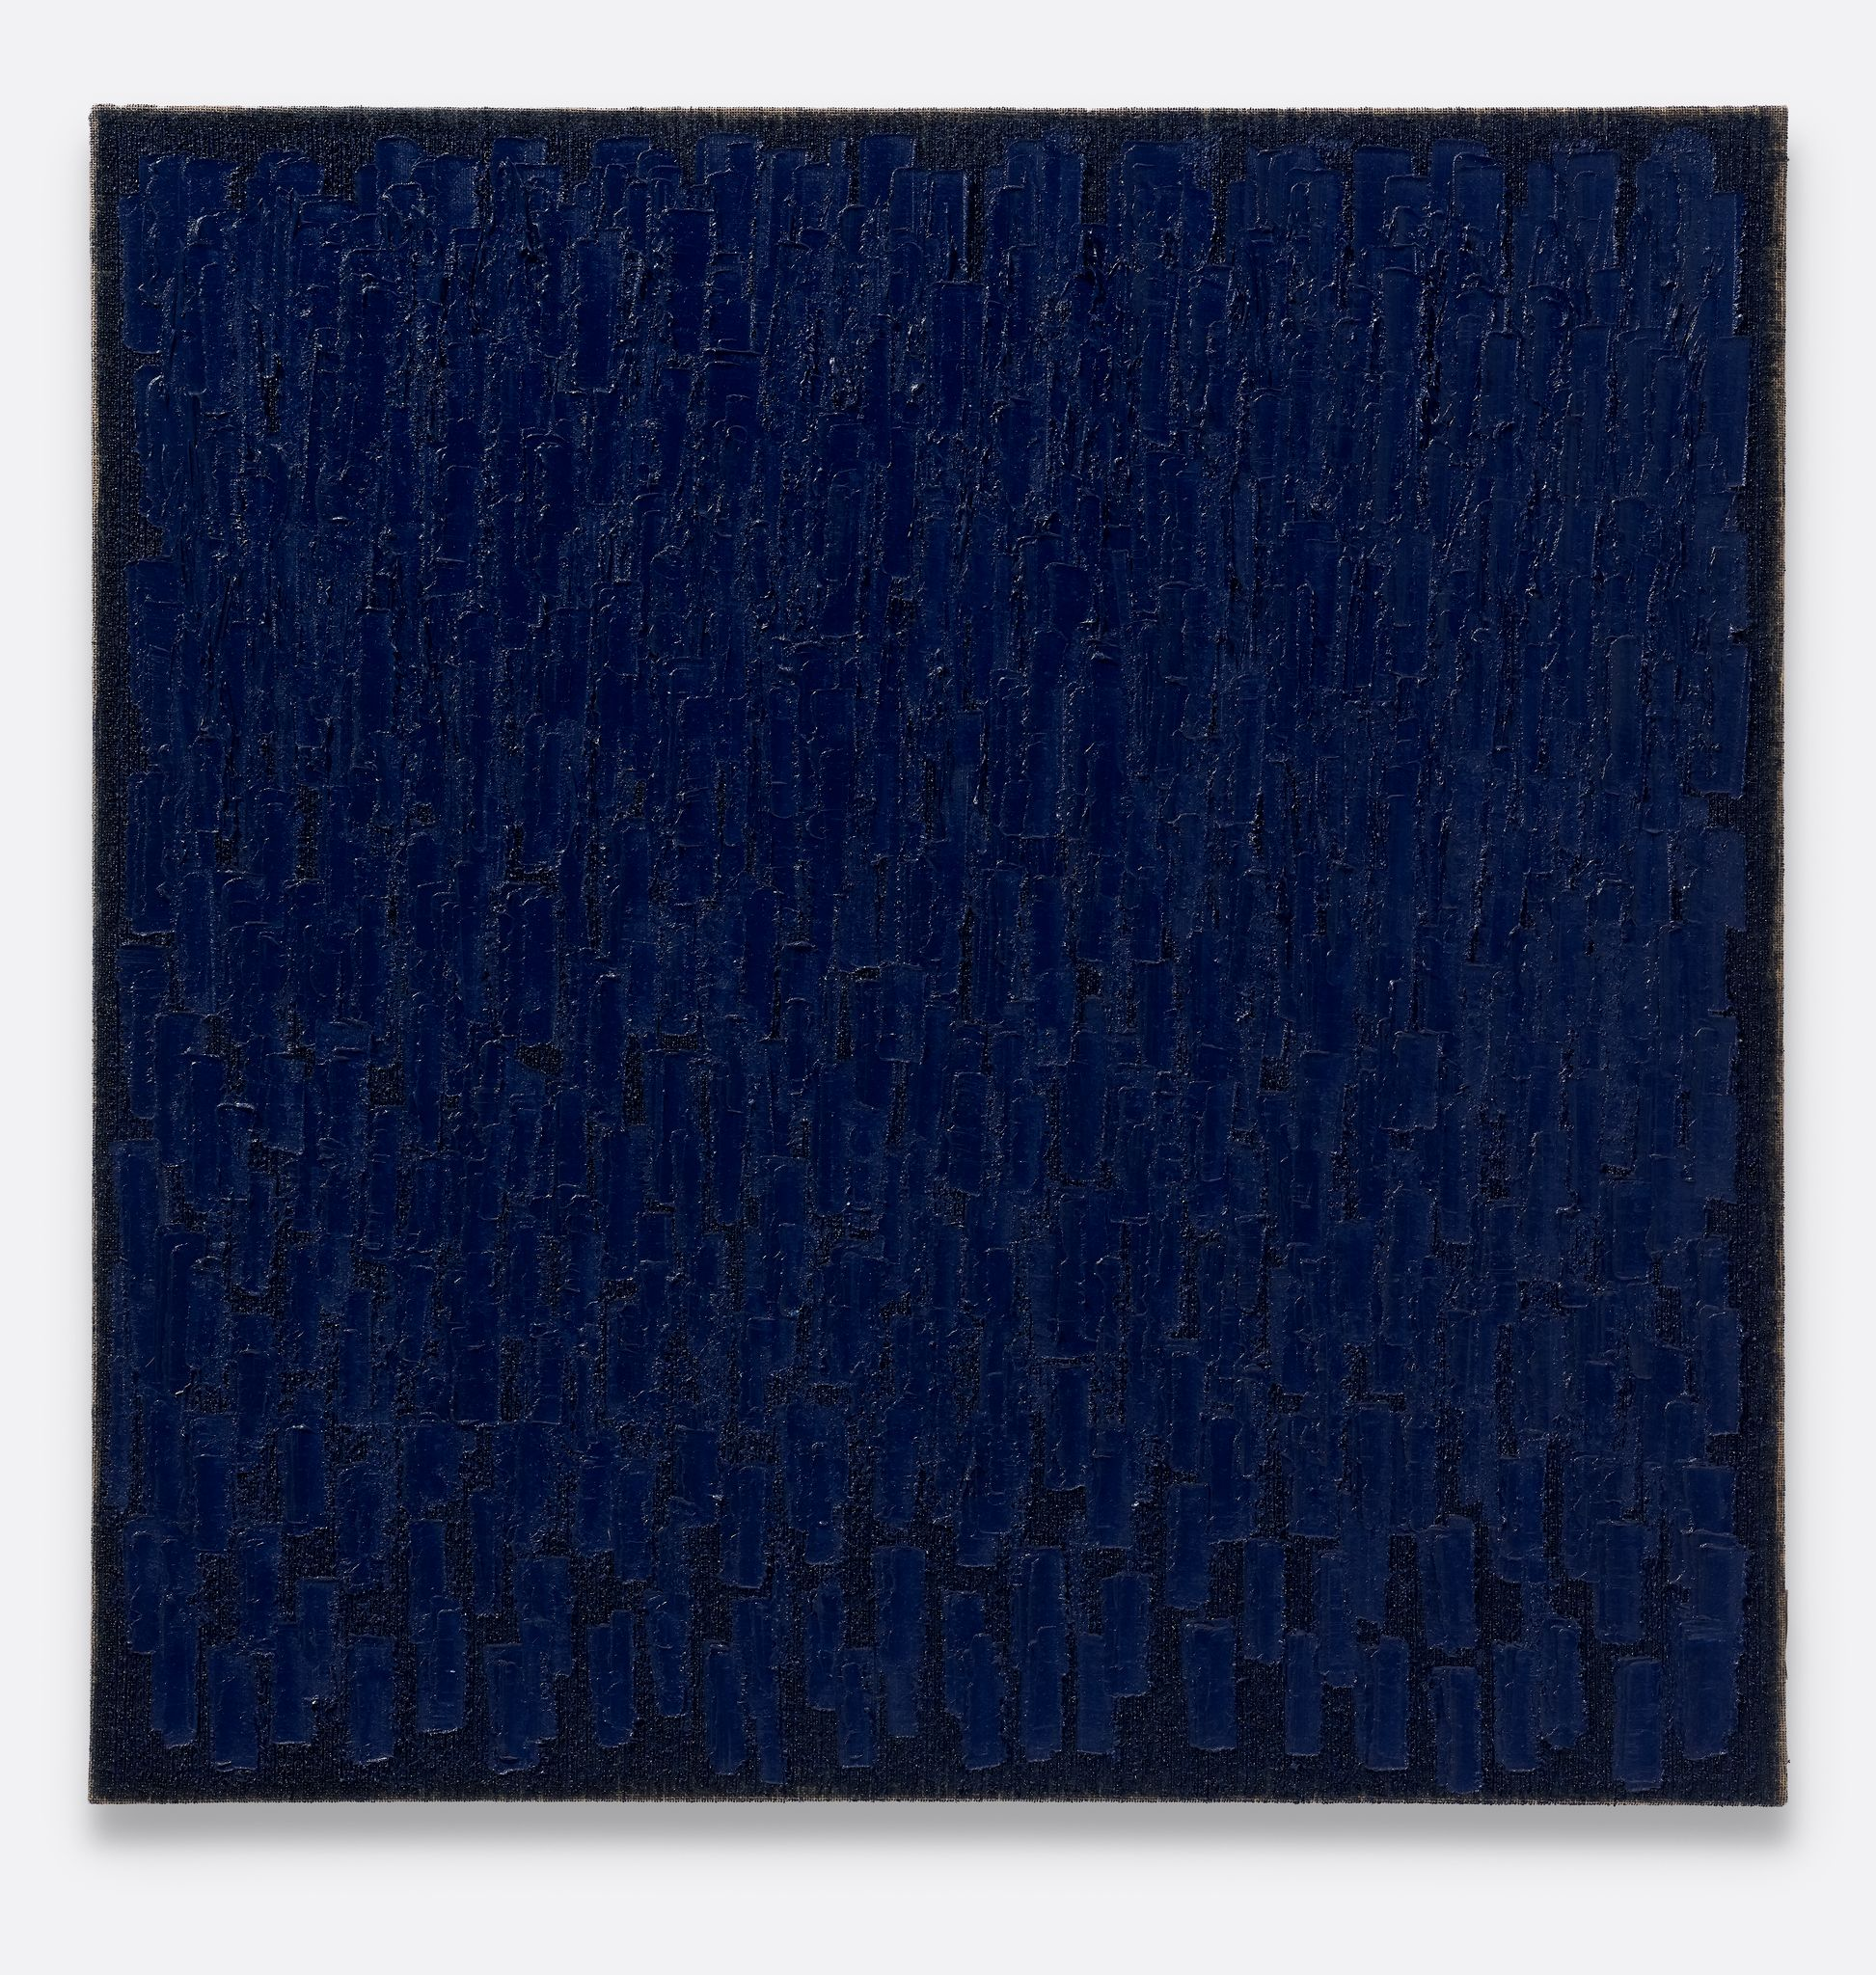 Ha Chong-Hyun, Conjunction 18-22, 2018, Oil on hemp cloth 180 x 180 cm, 70 7/8 x 70 7/8 in. Courtesy of the Artist and Almine Rech. © Ha Chong-Hyun Photography: Melissa Castro Duarte